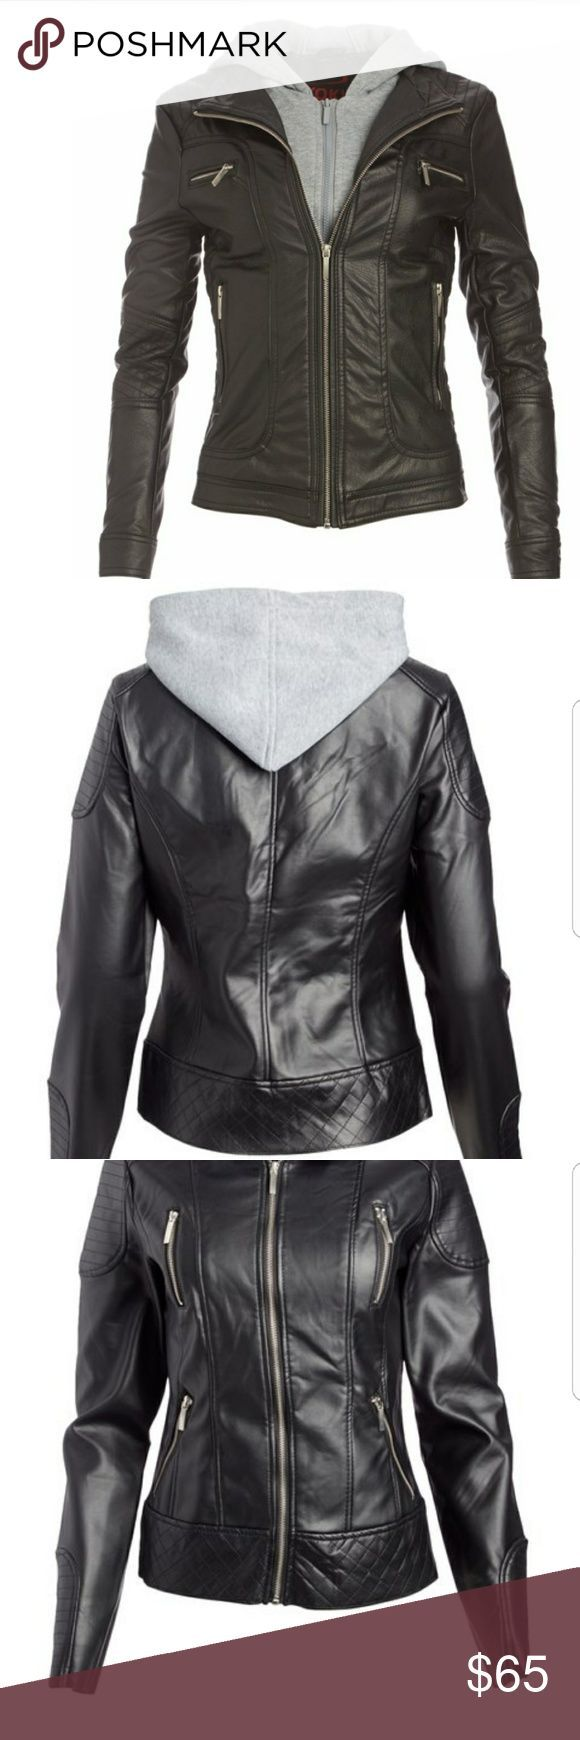 Plus Size Leather Jacket Nwt plus size black and gray hooded faux leather jacket.  Retail $99 Size xxl. Jackets & Coats